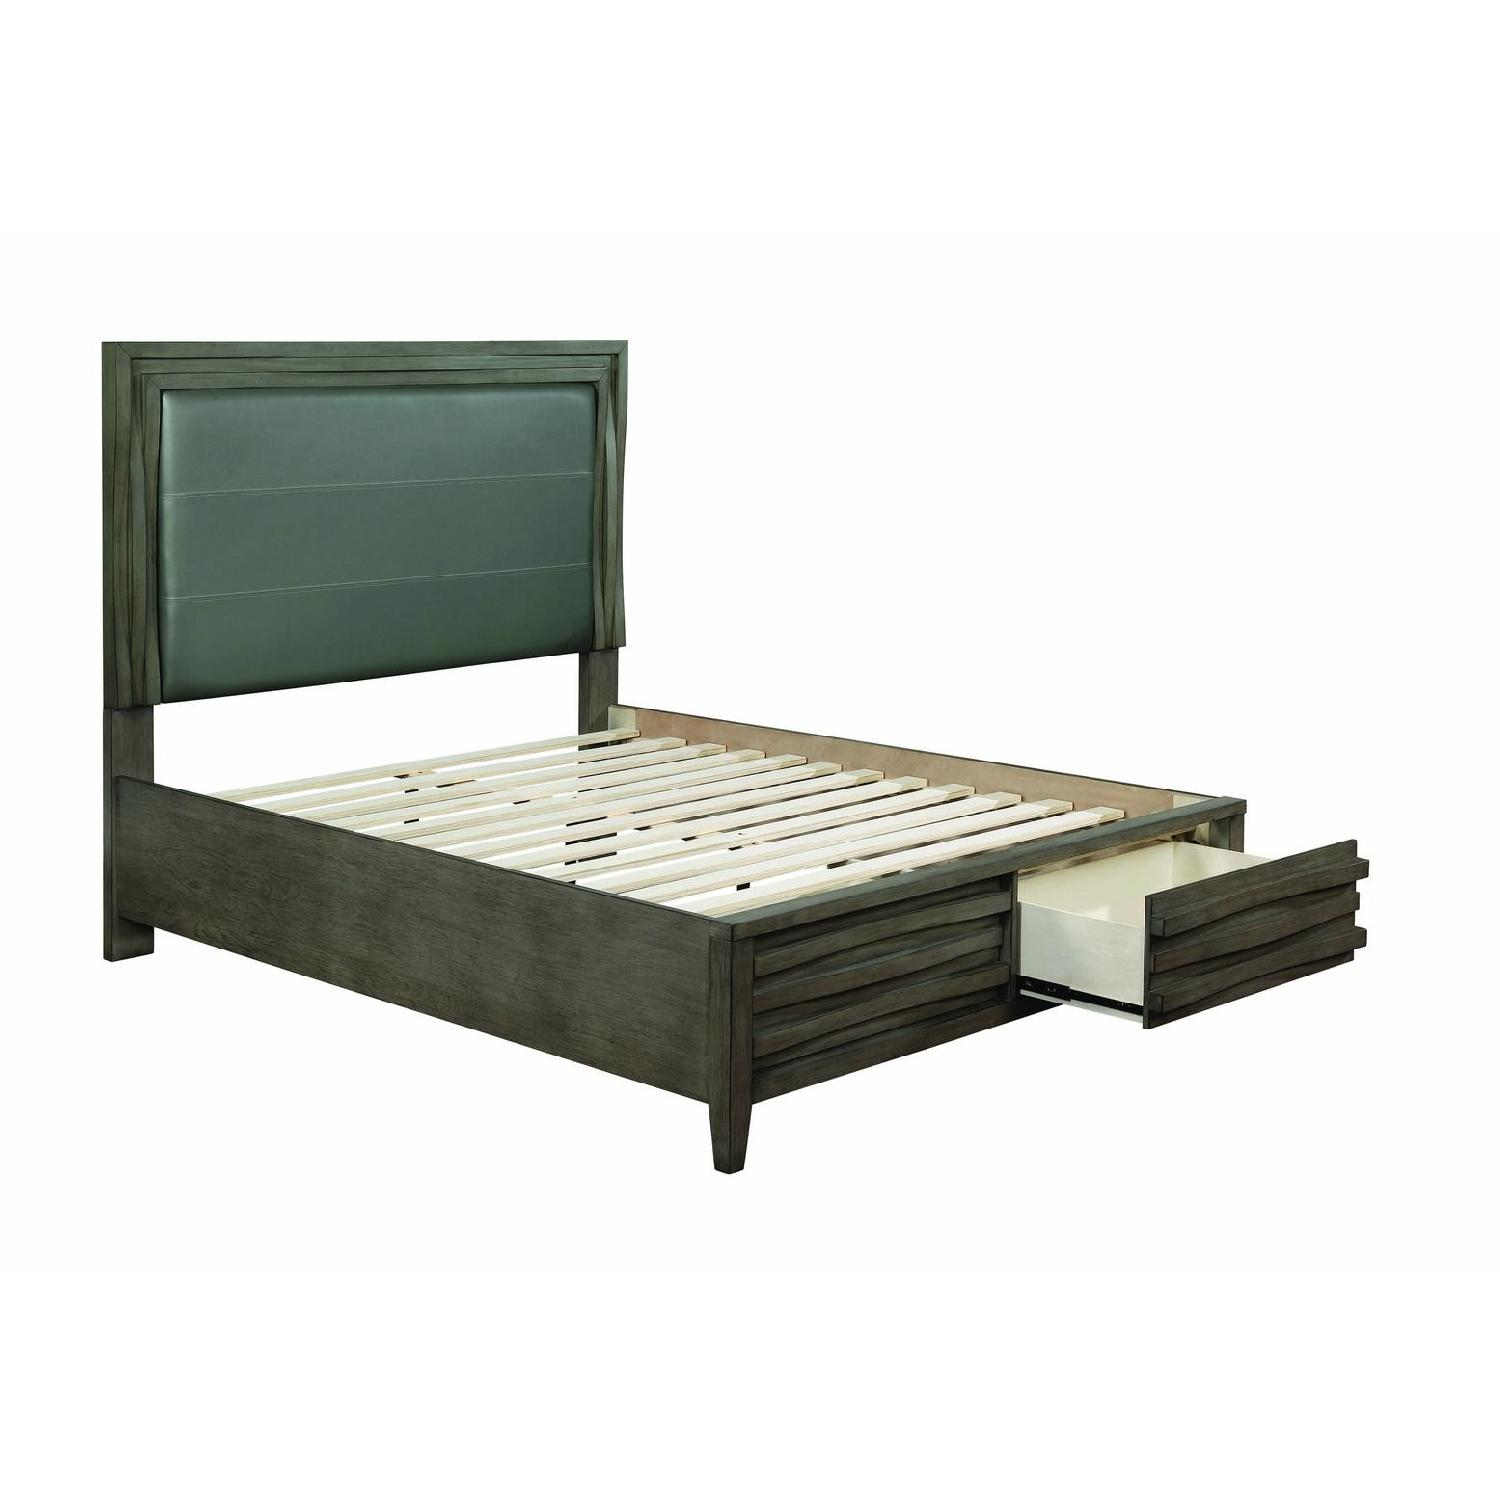 King Bed in Dark Taupe w/ 2 Storage Drawers - image-2